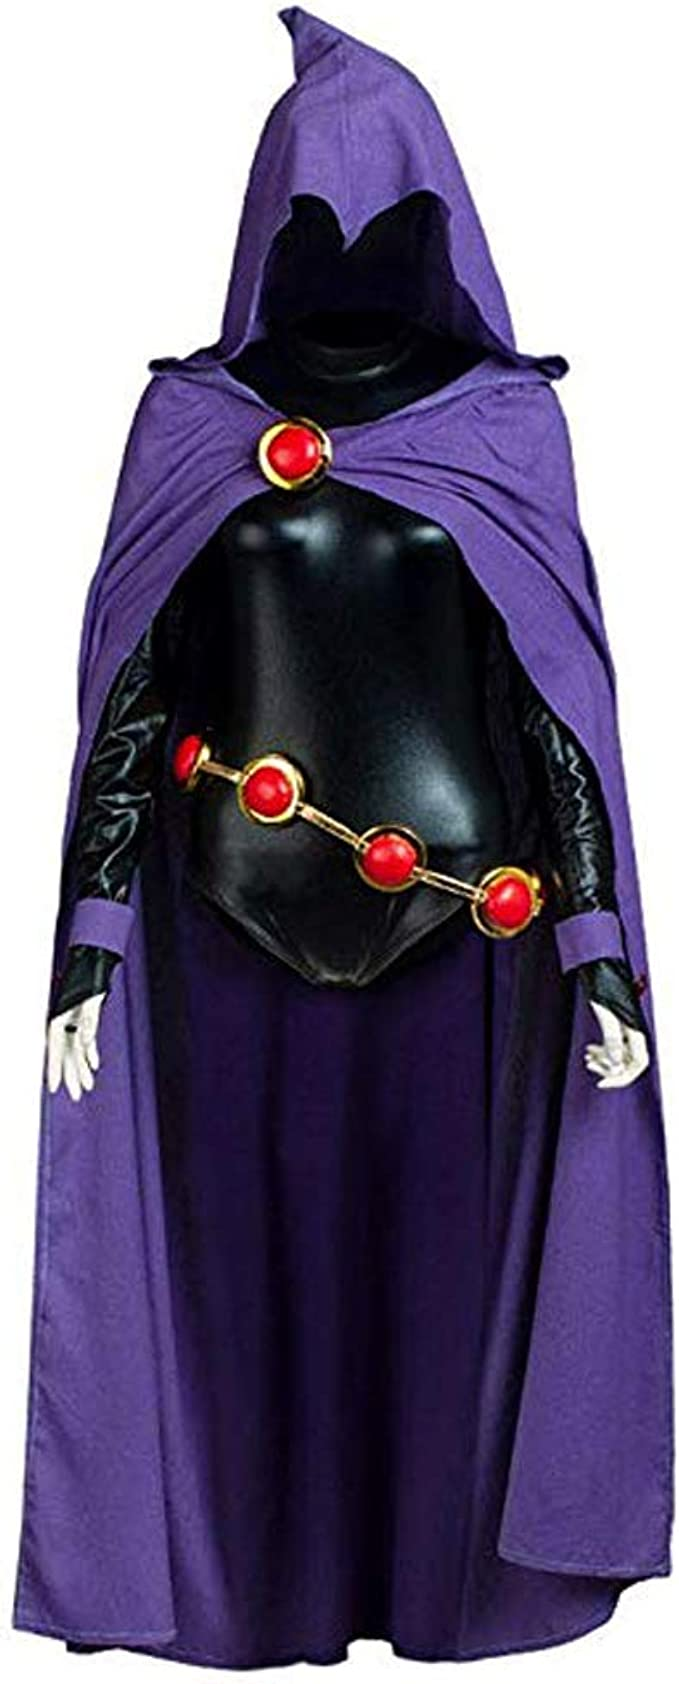 Amazon Com Anime Raven Cosplay Costume Purple Suit Outfit With Cloak Halloween Clothing Raven star cosplay www.facebook.com/ravenstarcosplay photography: anime raven cosplay costume purple suit